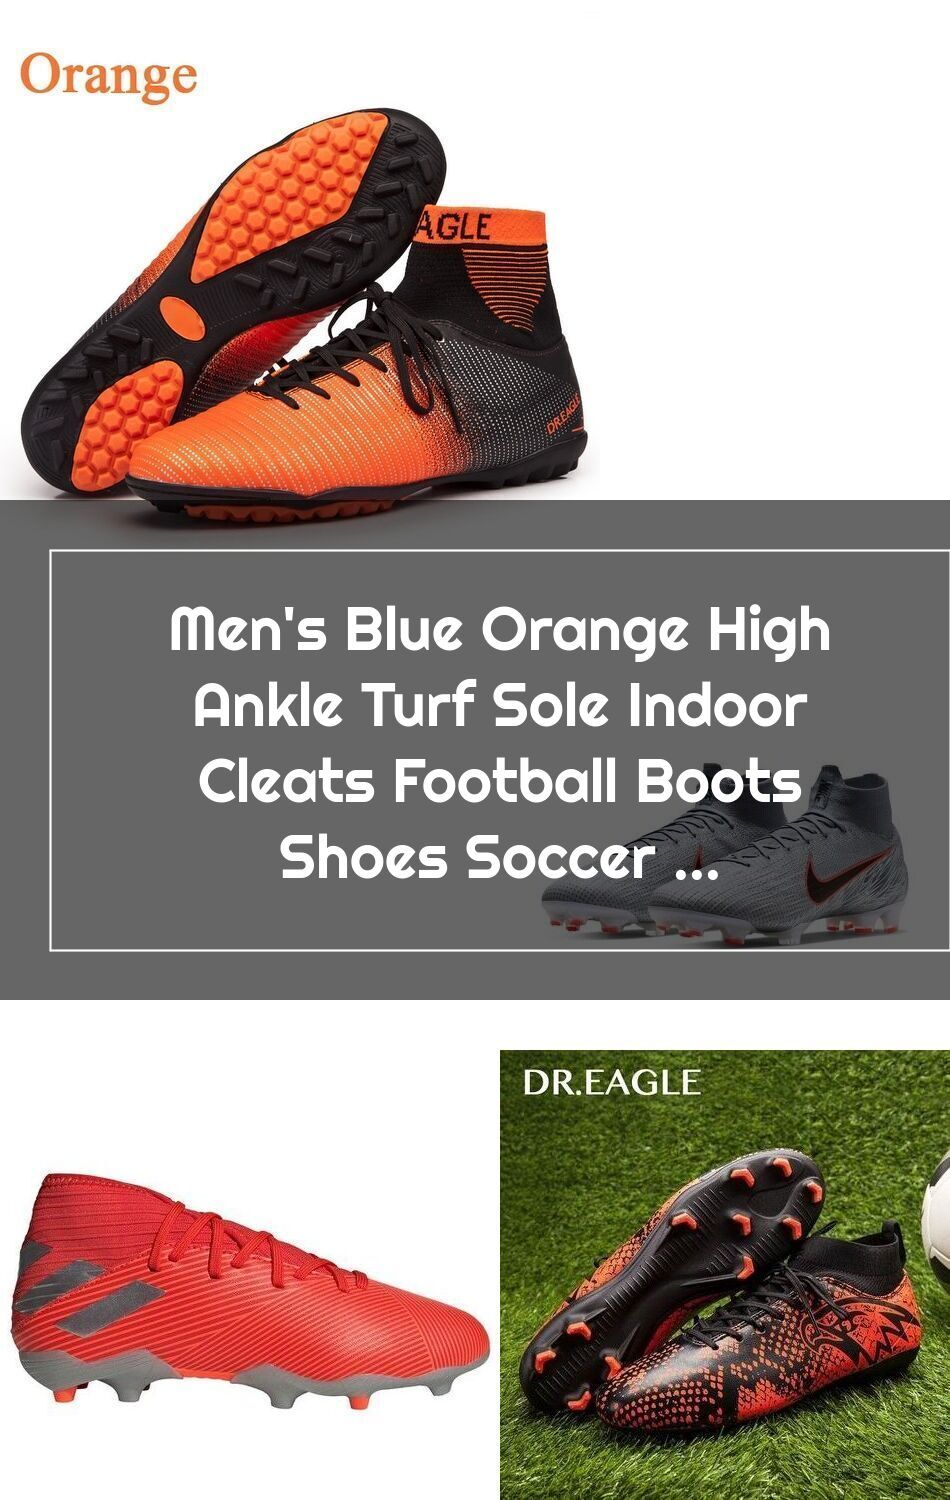 Men S Blue Orange High Ankle Turf Sole Indoor Cleats Football Boots Shoes Soccer Cleats 2020